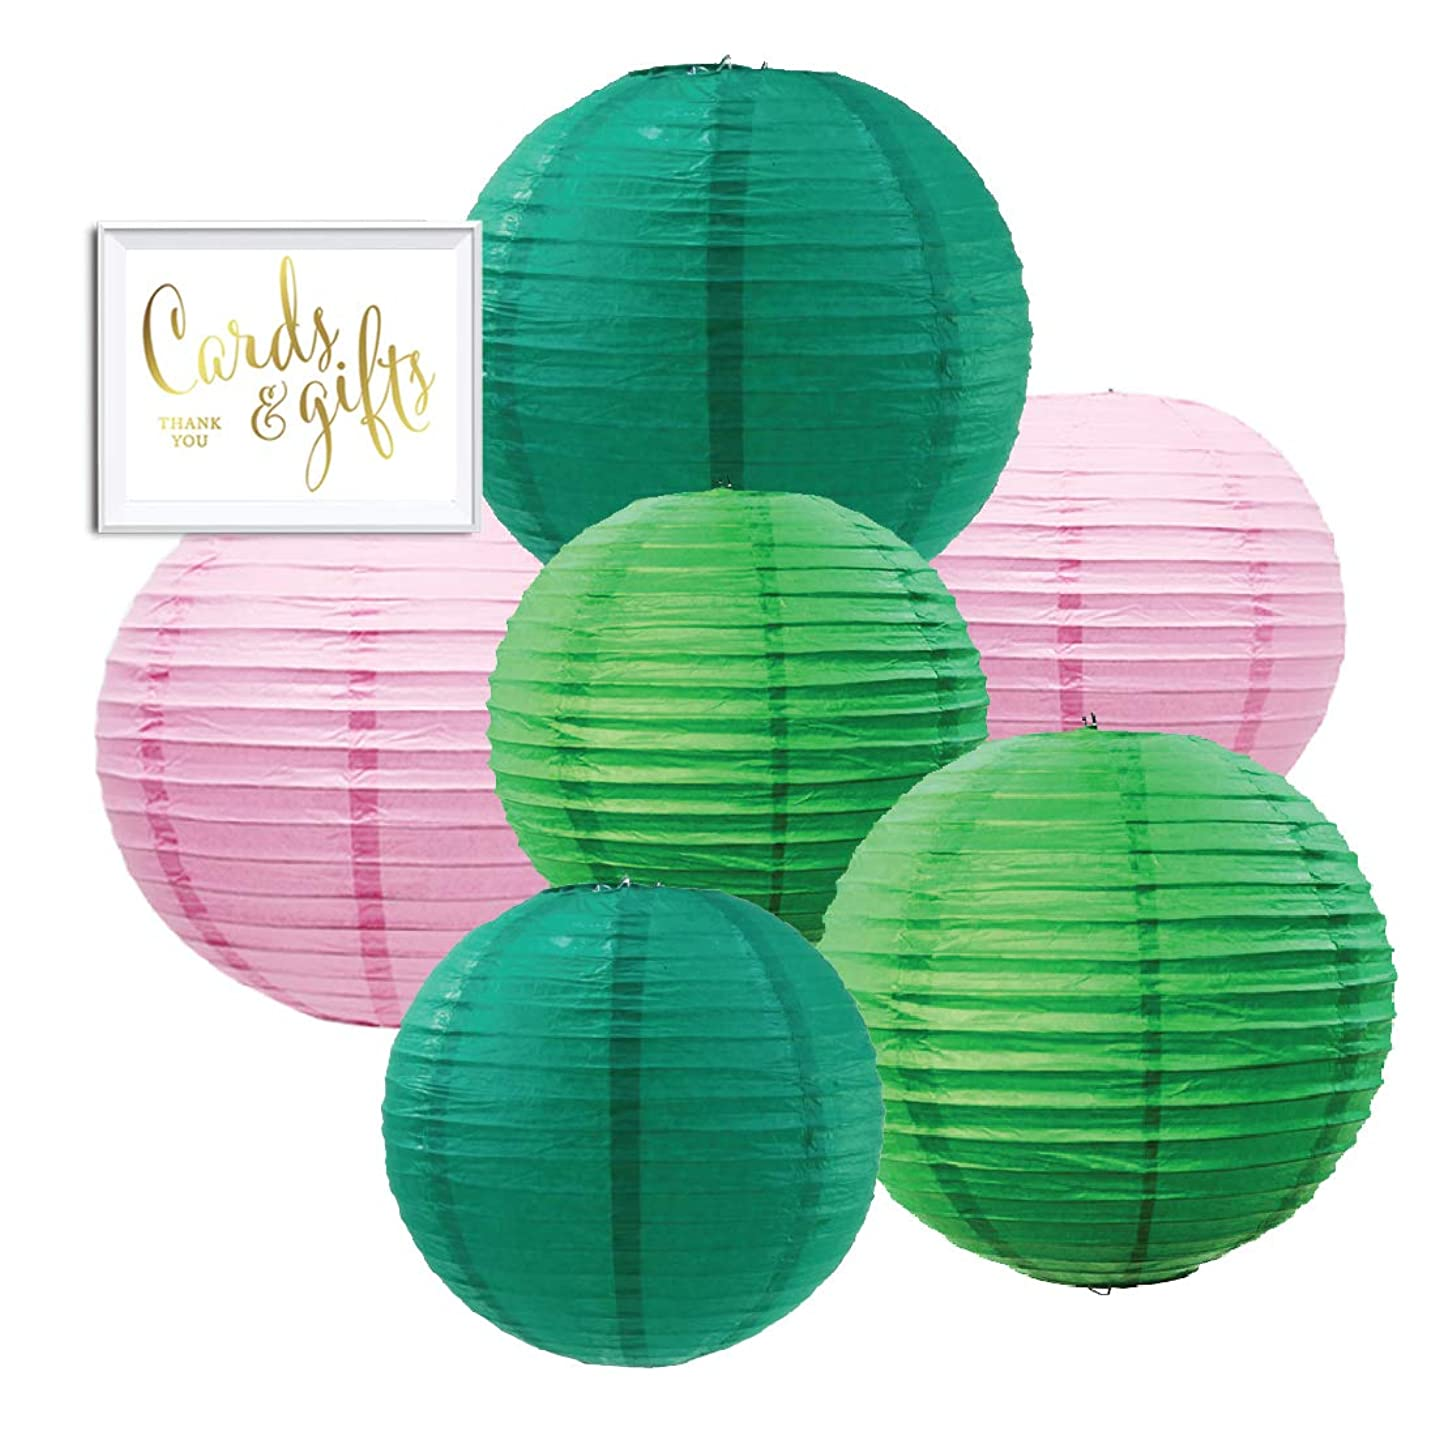 Andaz Press Emerald Green, Kiwi Green, Blush Pink Hanging Paper Lanterns Decorative Kit, 6-Pack with Free Gifts Table Party Sign, Cactus, Hawaiian Luau, Tropical, Boho Birthday Party Decorations